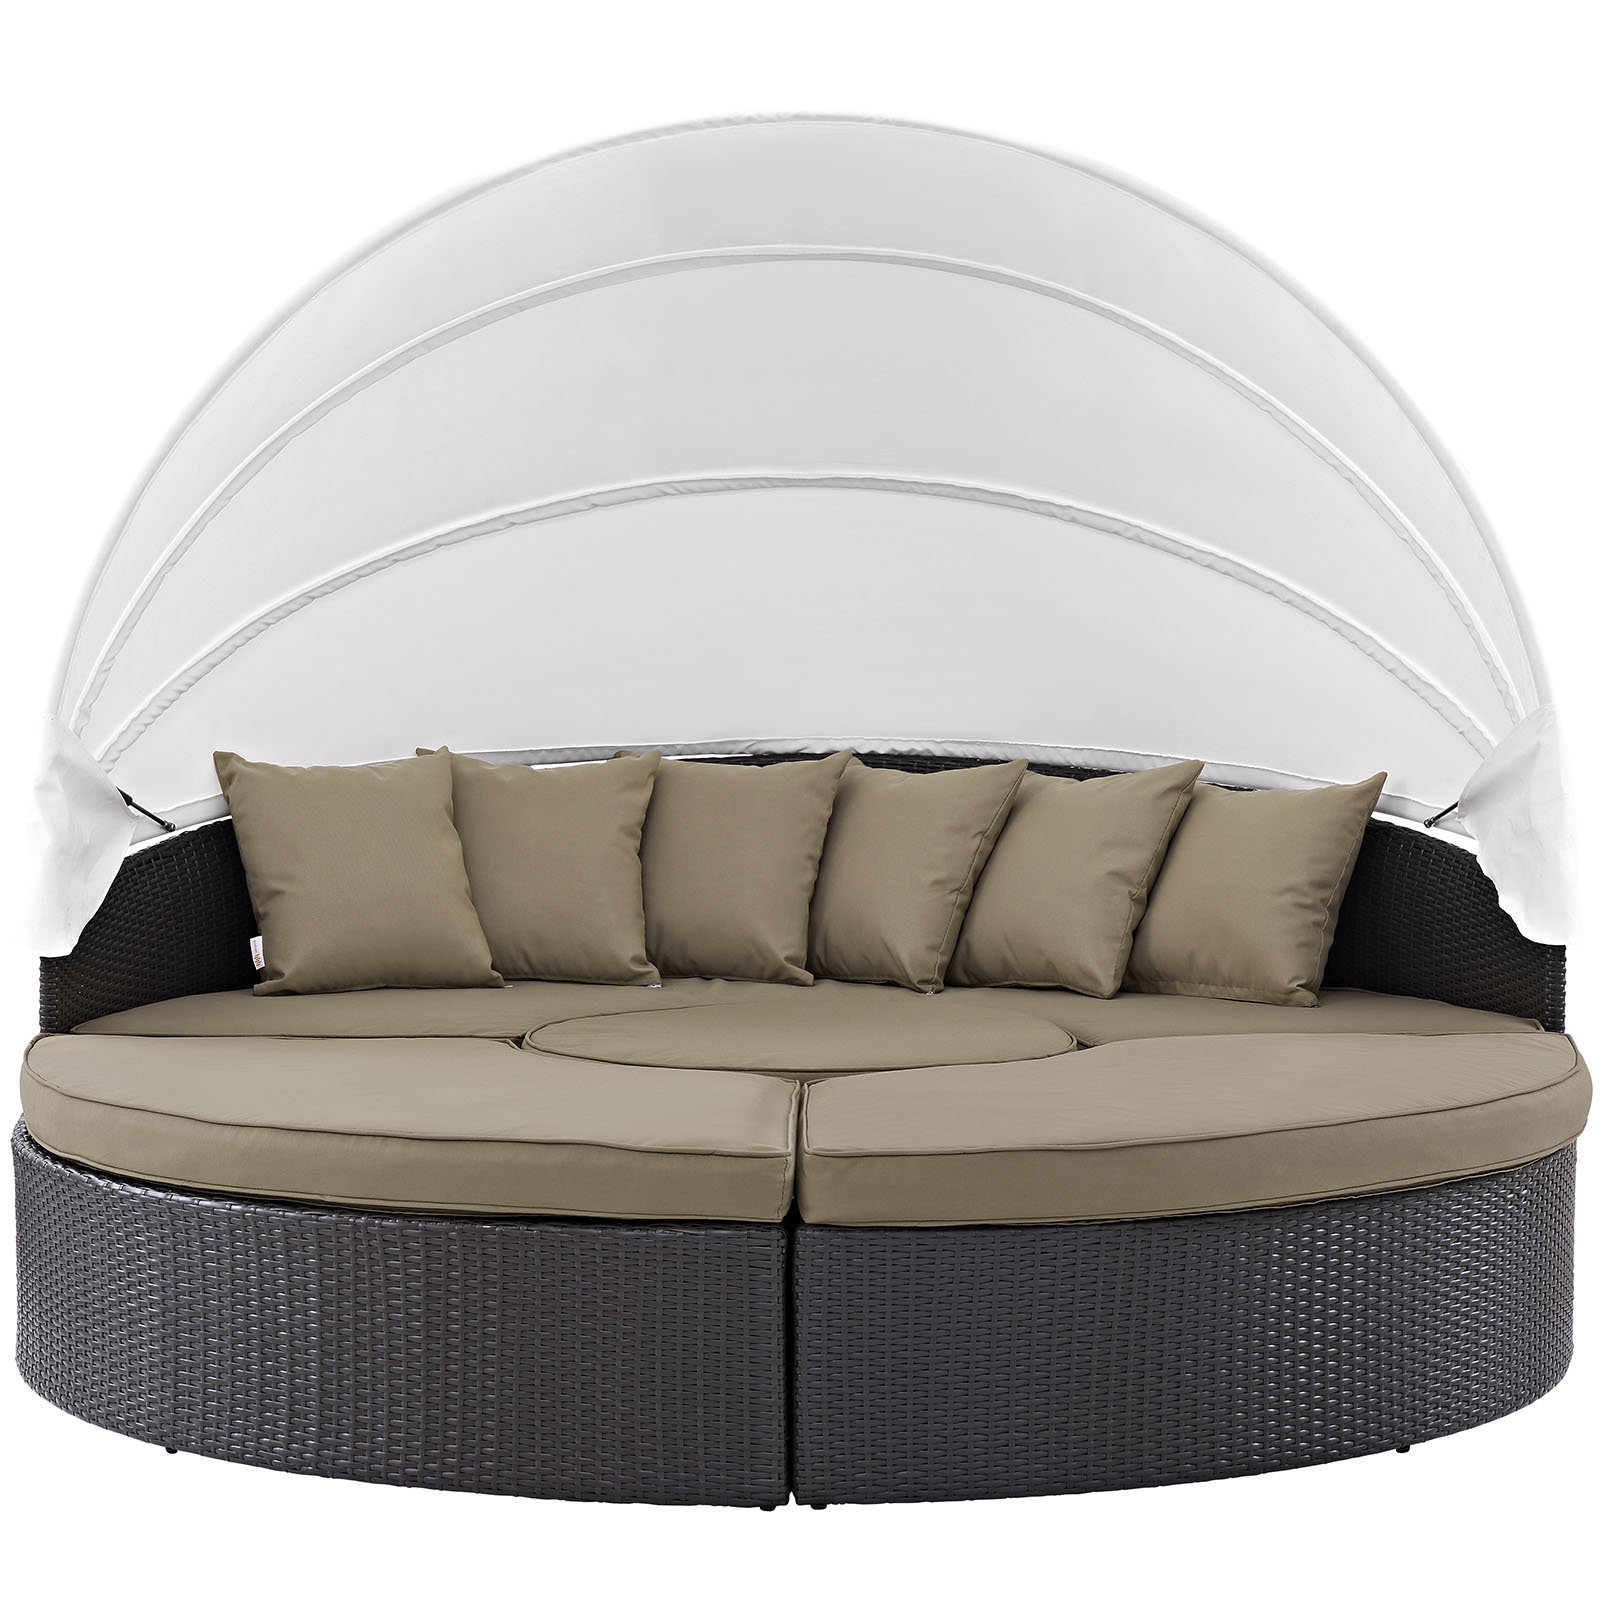 Brentwood Patio Daybed With Cushions With Popular Leiston Round Patio Daybeds With Cushions (Gallery 5 of 20)